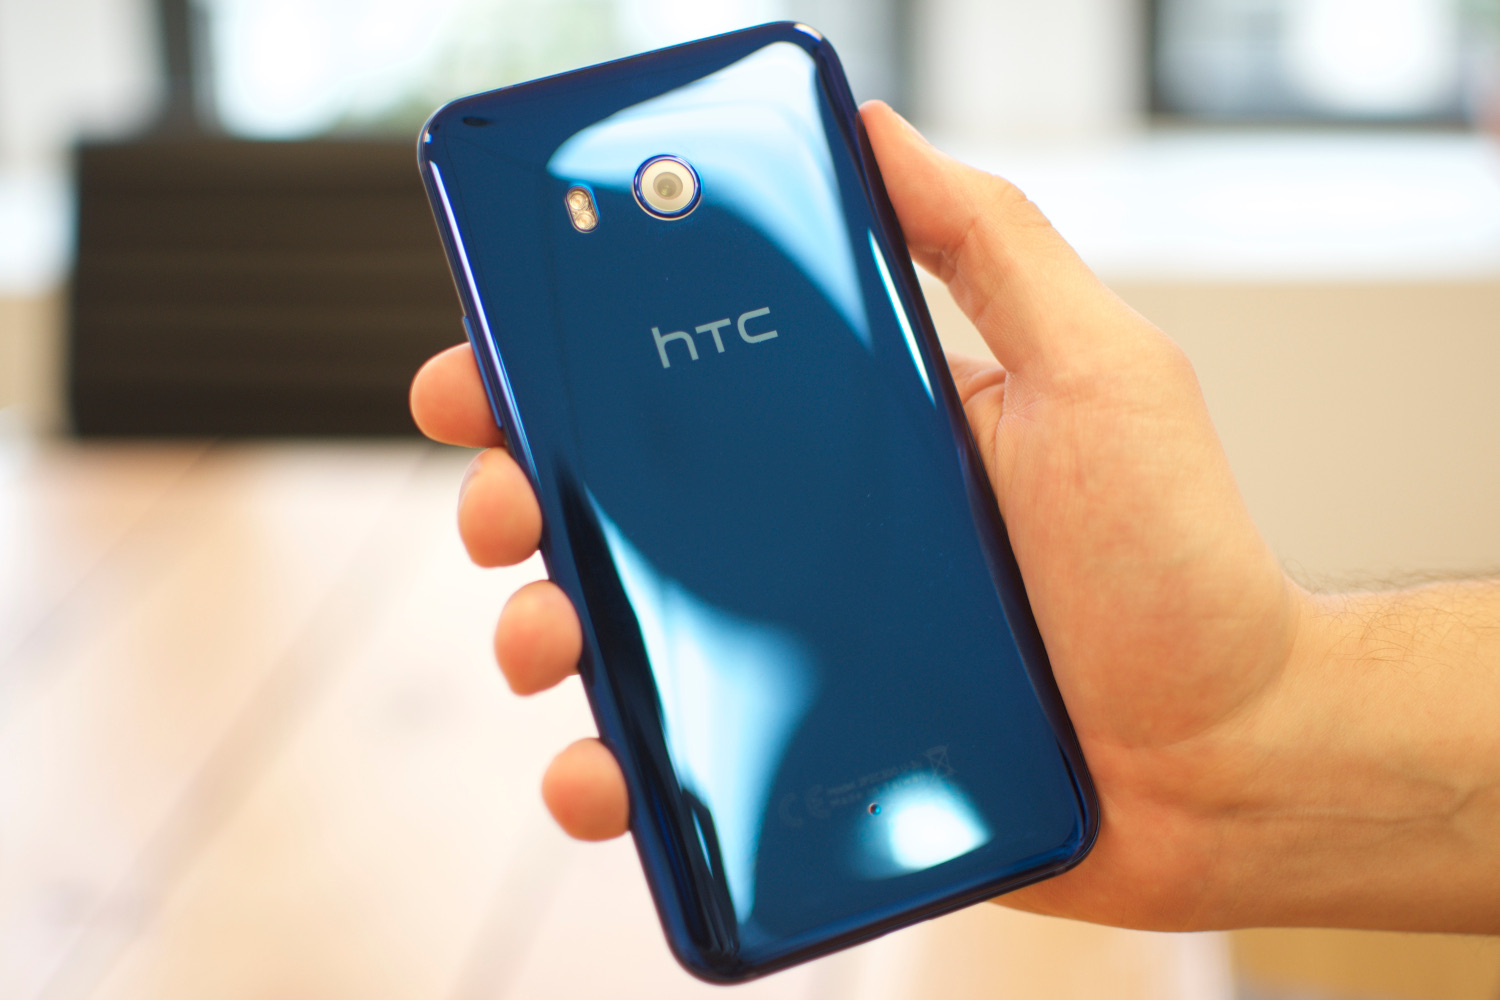 http://s3.amazonaws.com/digitaltrends-uploads-prod/2017/05/htc-u11-back.jpg